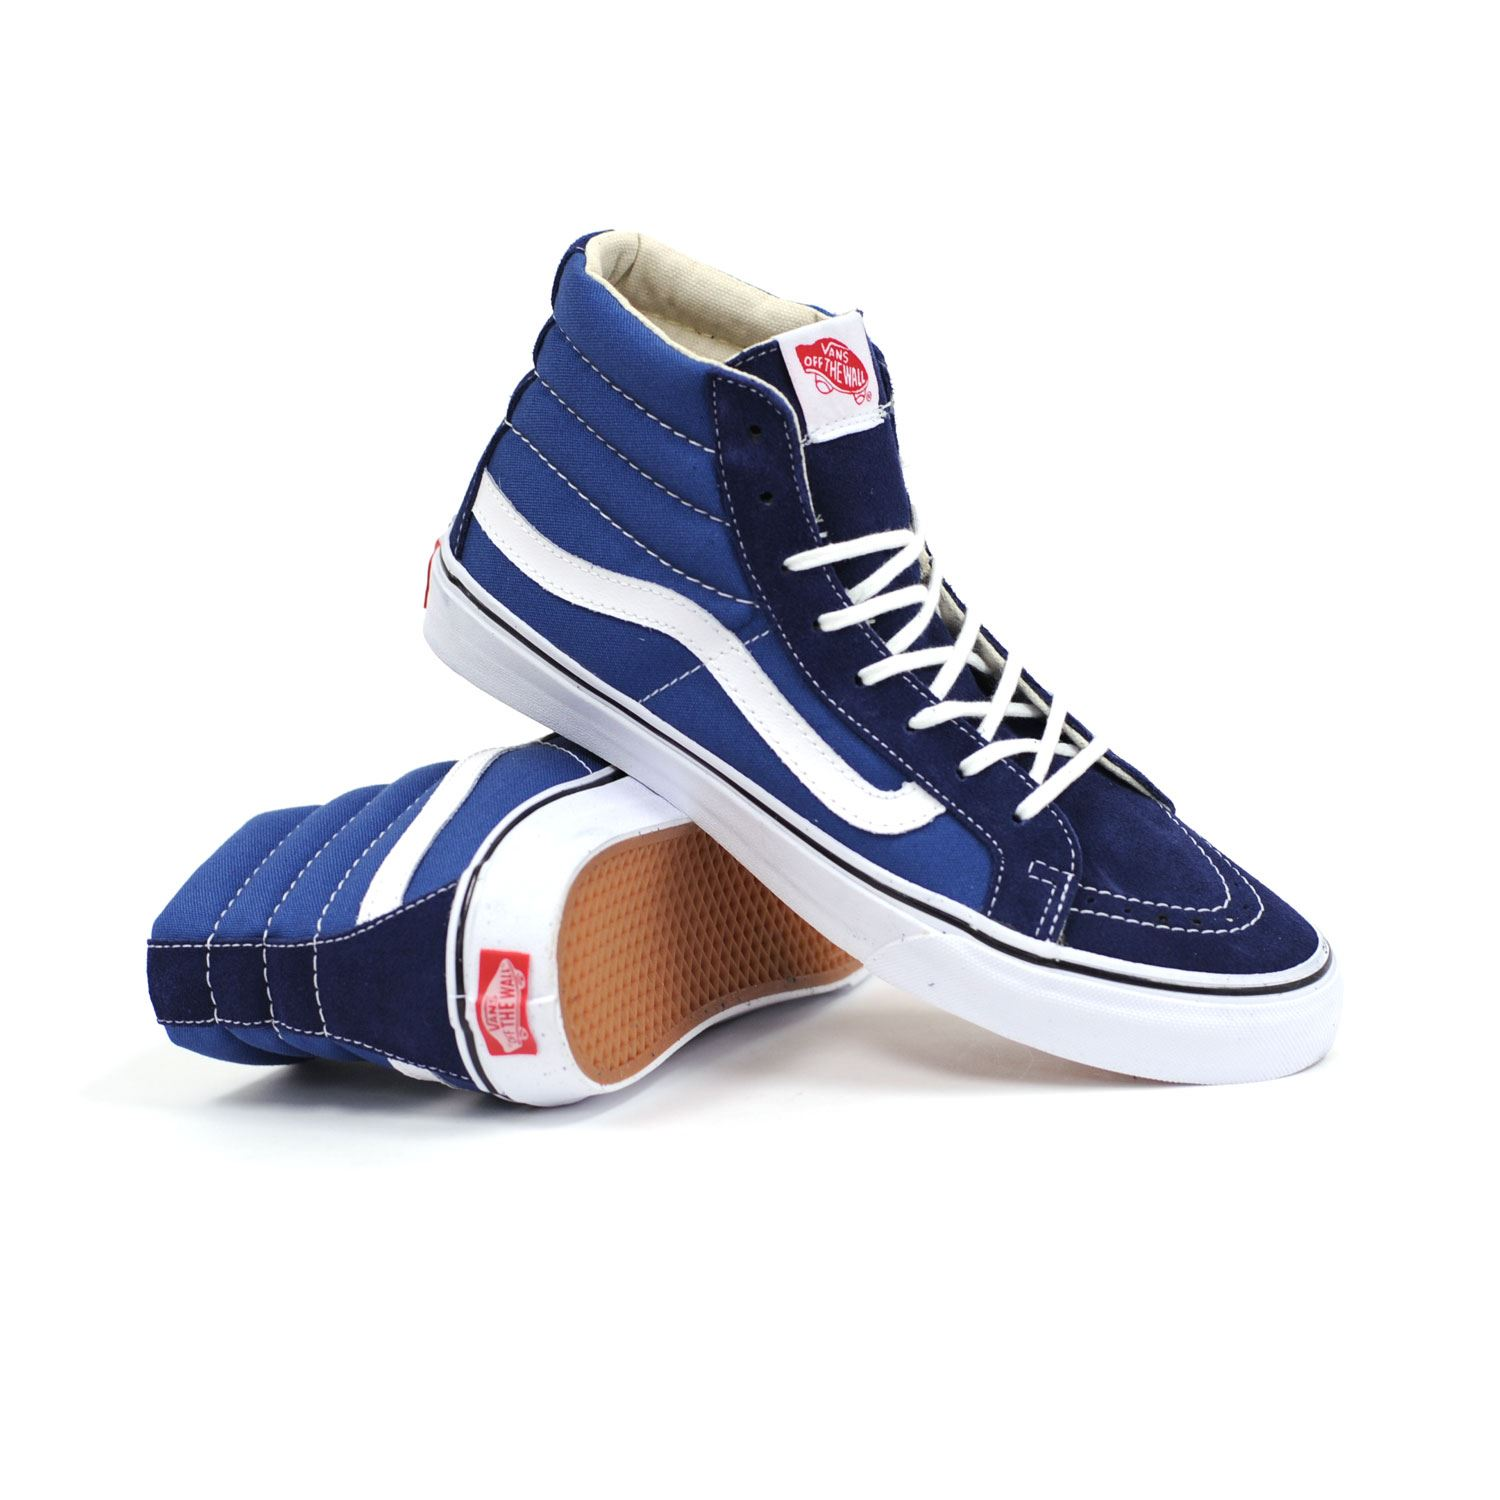 Vans Shoes Puerto Rico